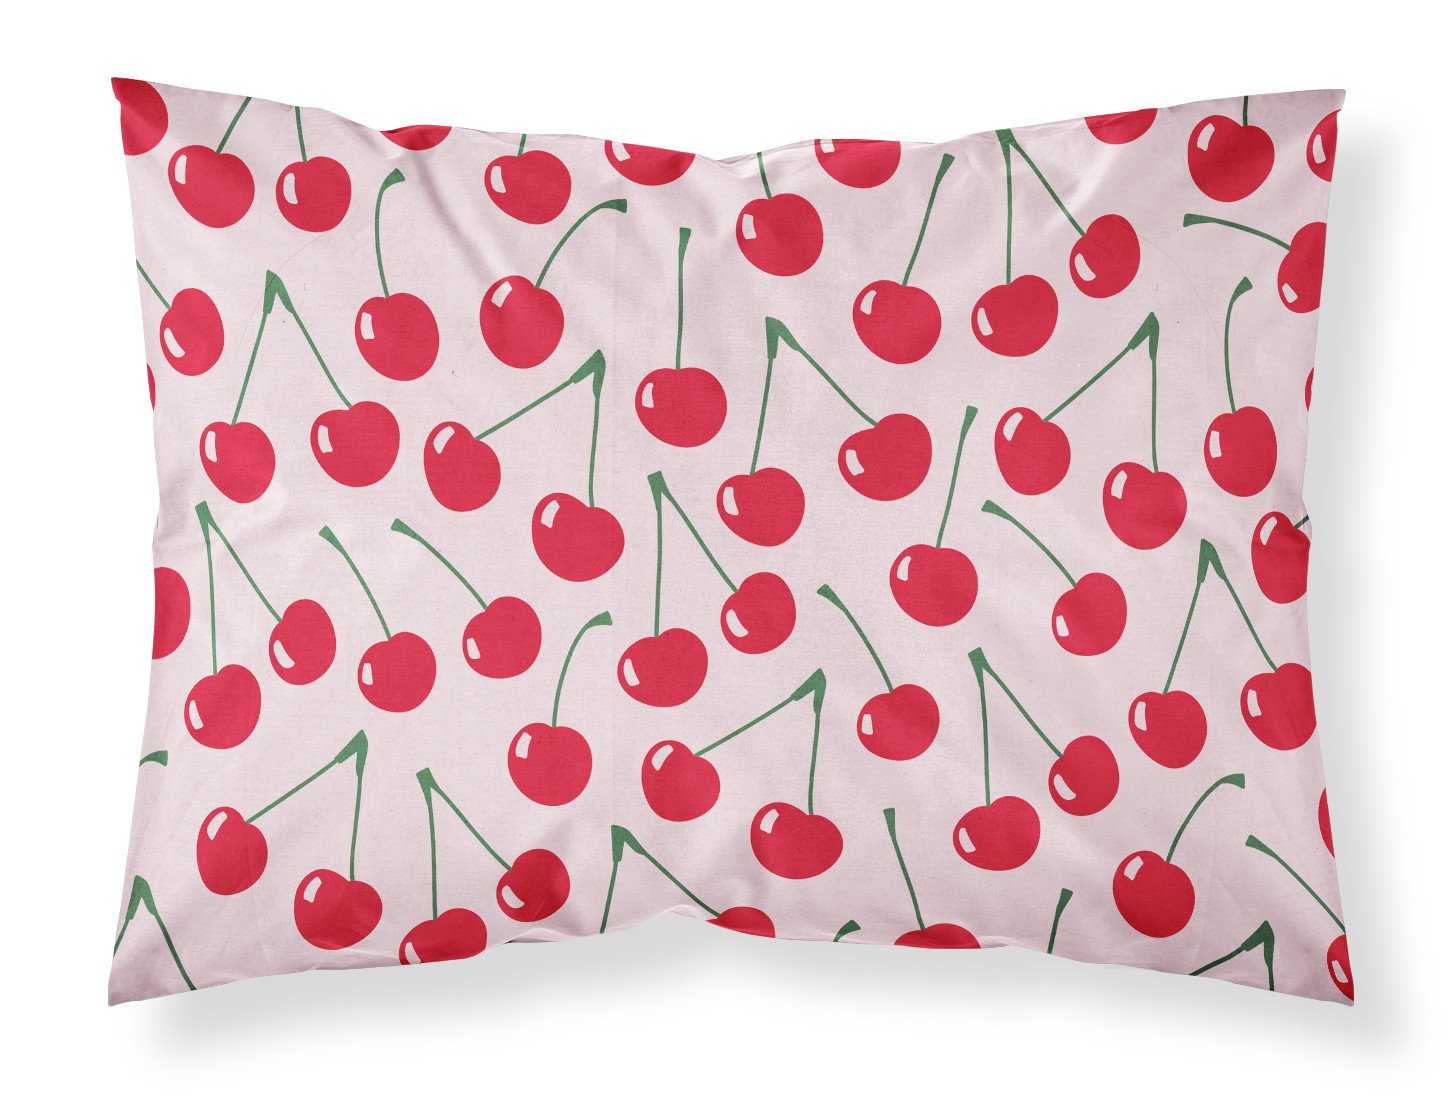 Cherries on Pink Fabric Standard Pillowcase BB5139PILLOWCASE by Caroline's Treasures